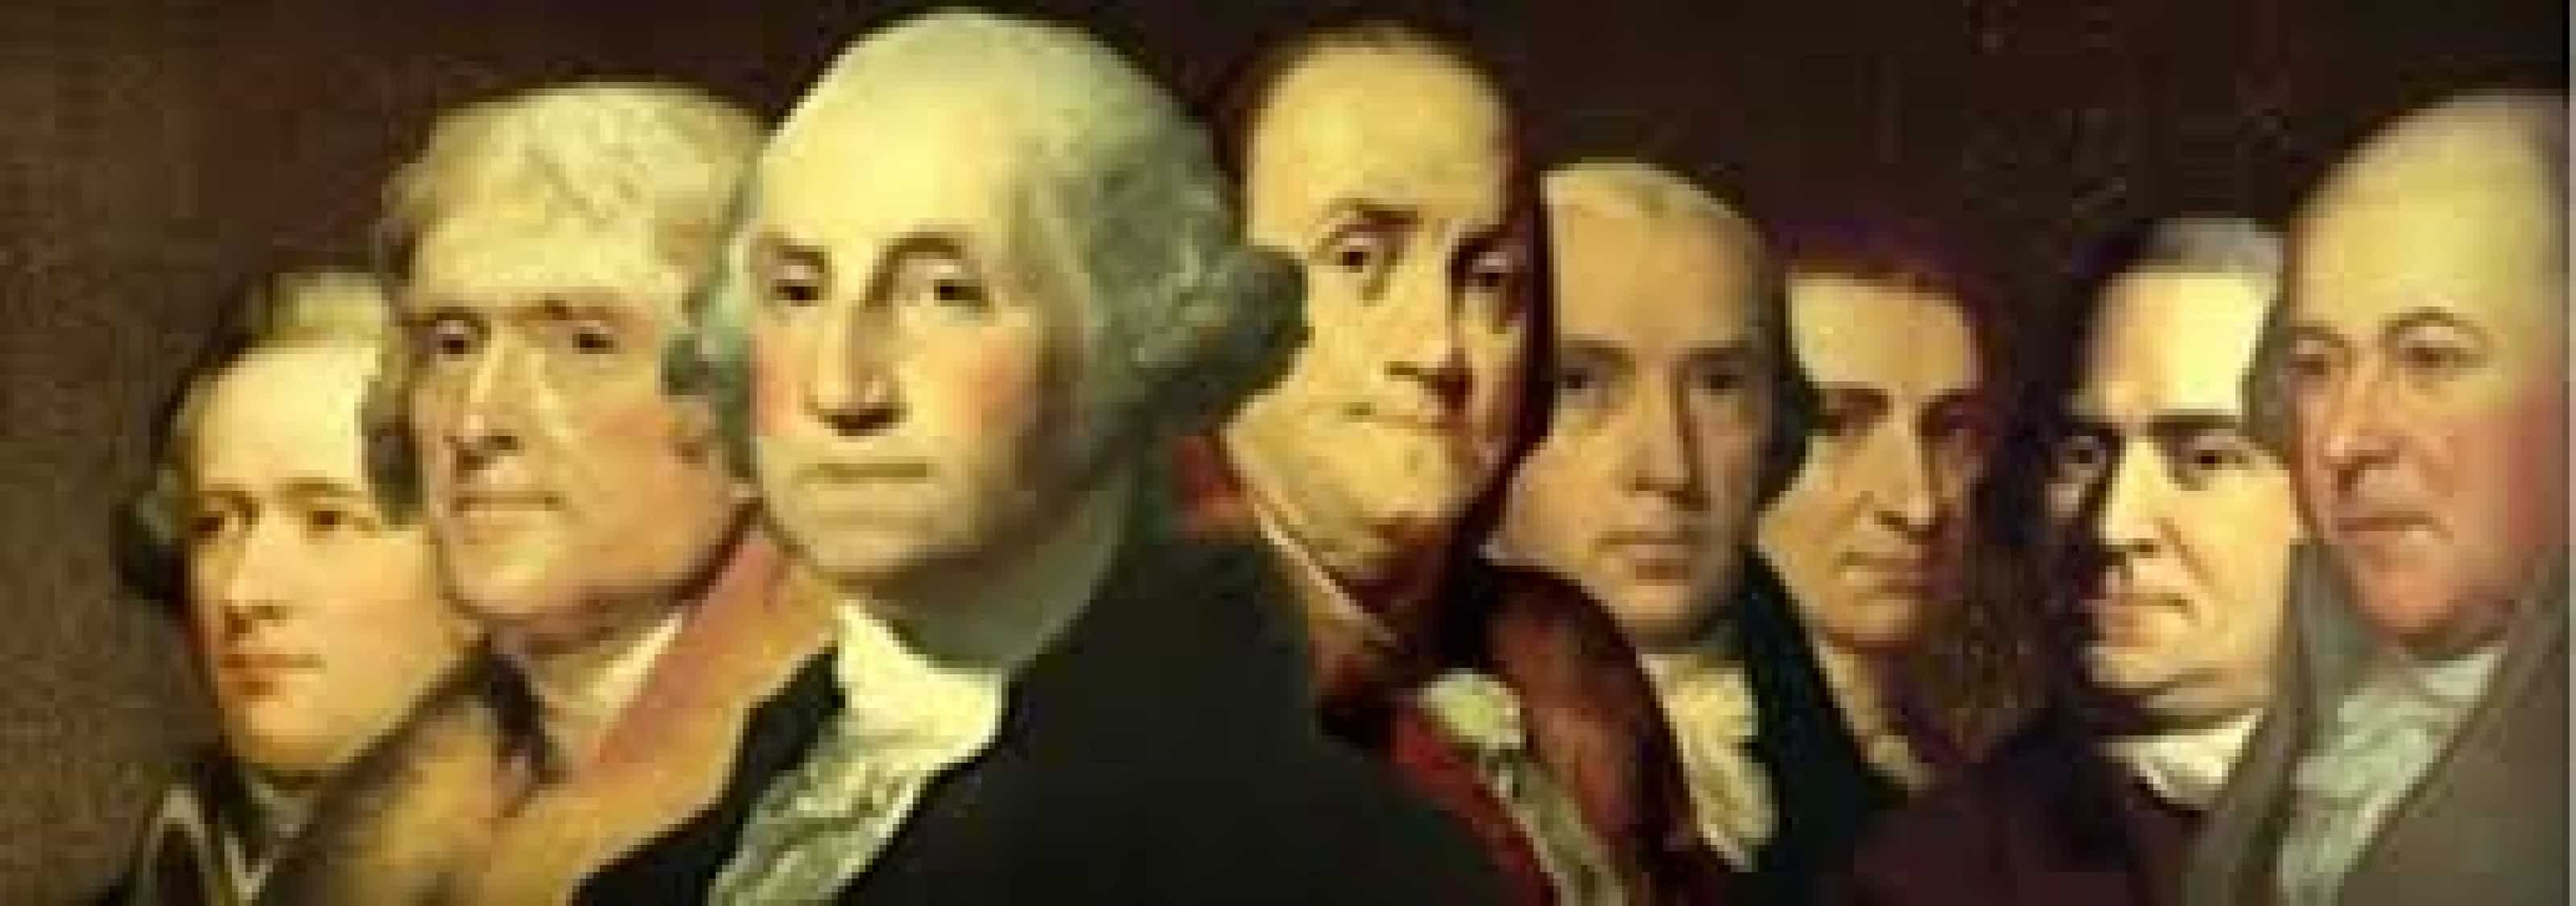 U.S. PRES HISTORY- FOUNDING FATHERS